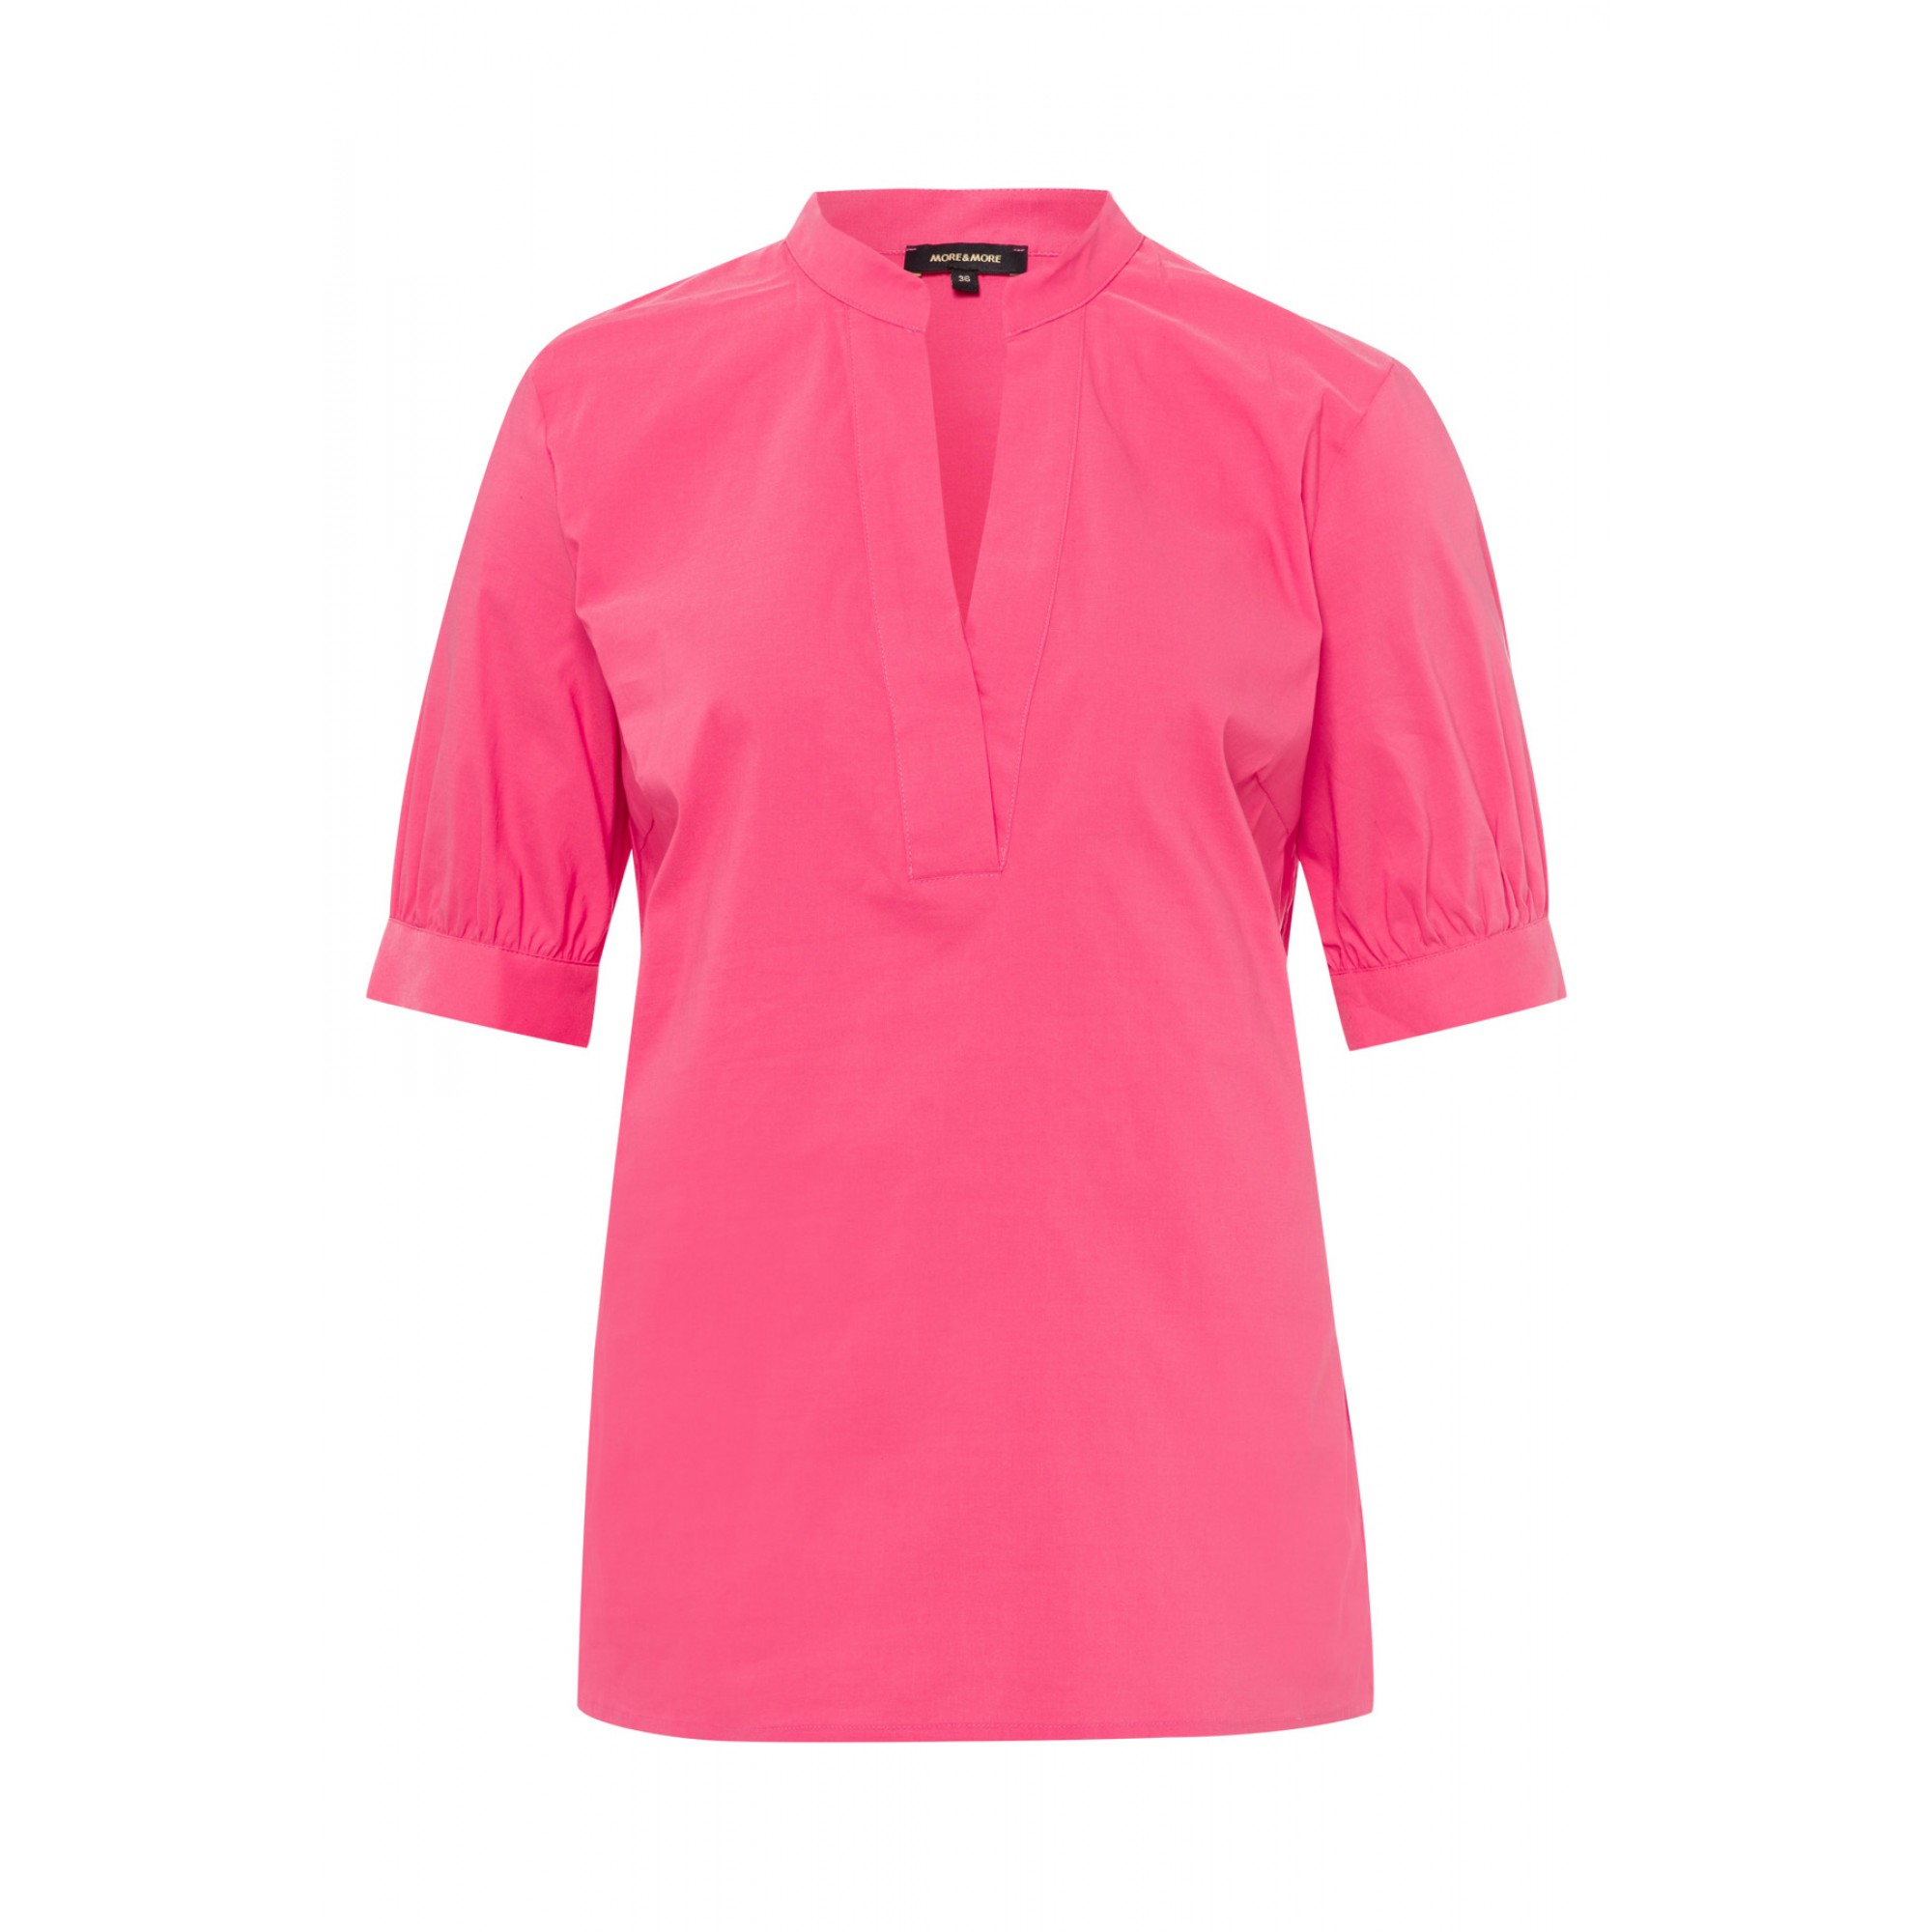 Baumwoll/Stretch Bluse, pink berry 11832551-0831 1